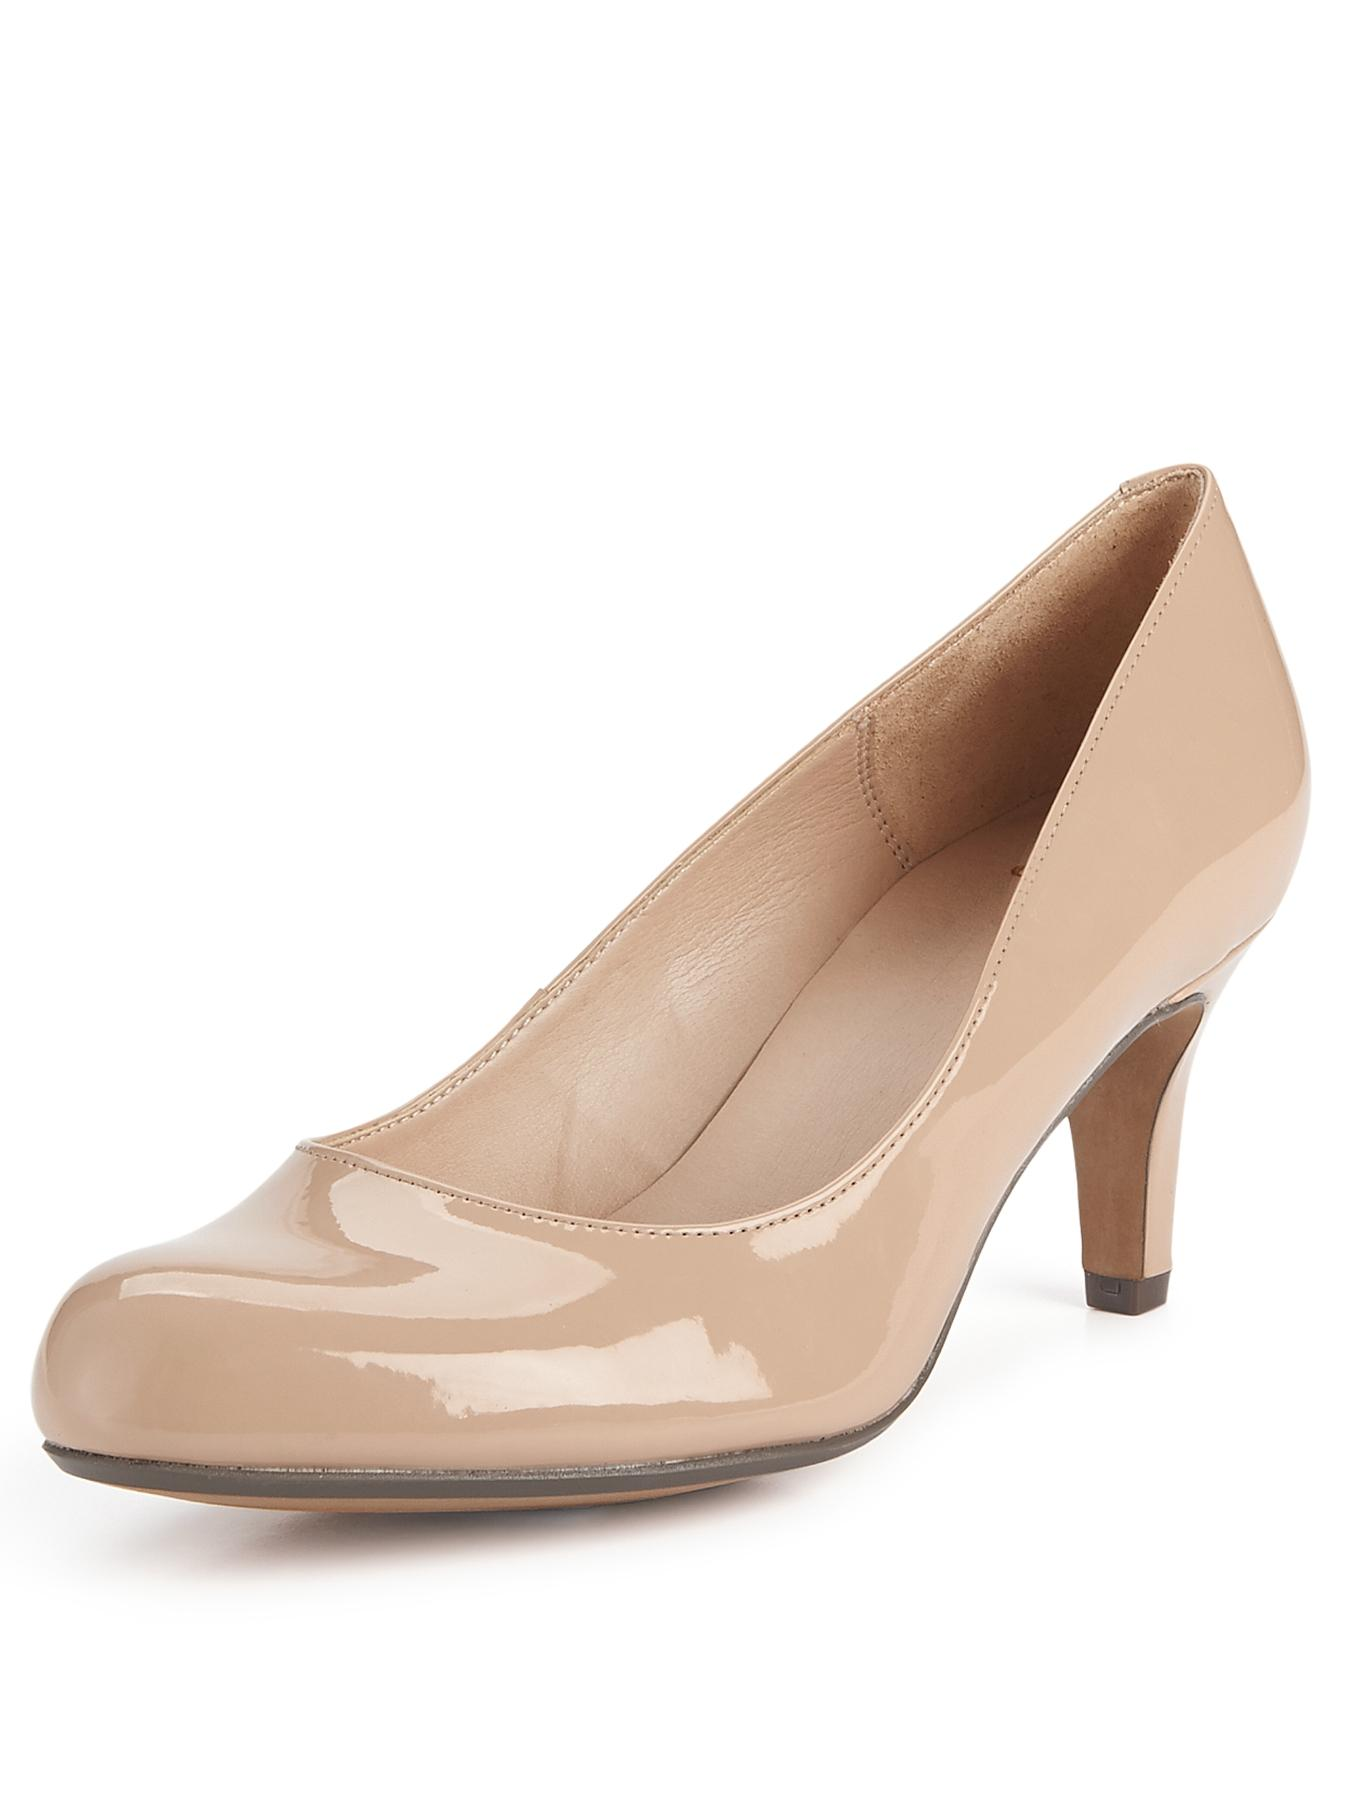 Clarks Arista Abe Court Shoes - Nude Patent - Nude, Nude